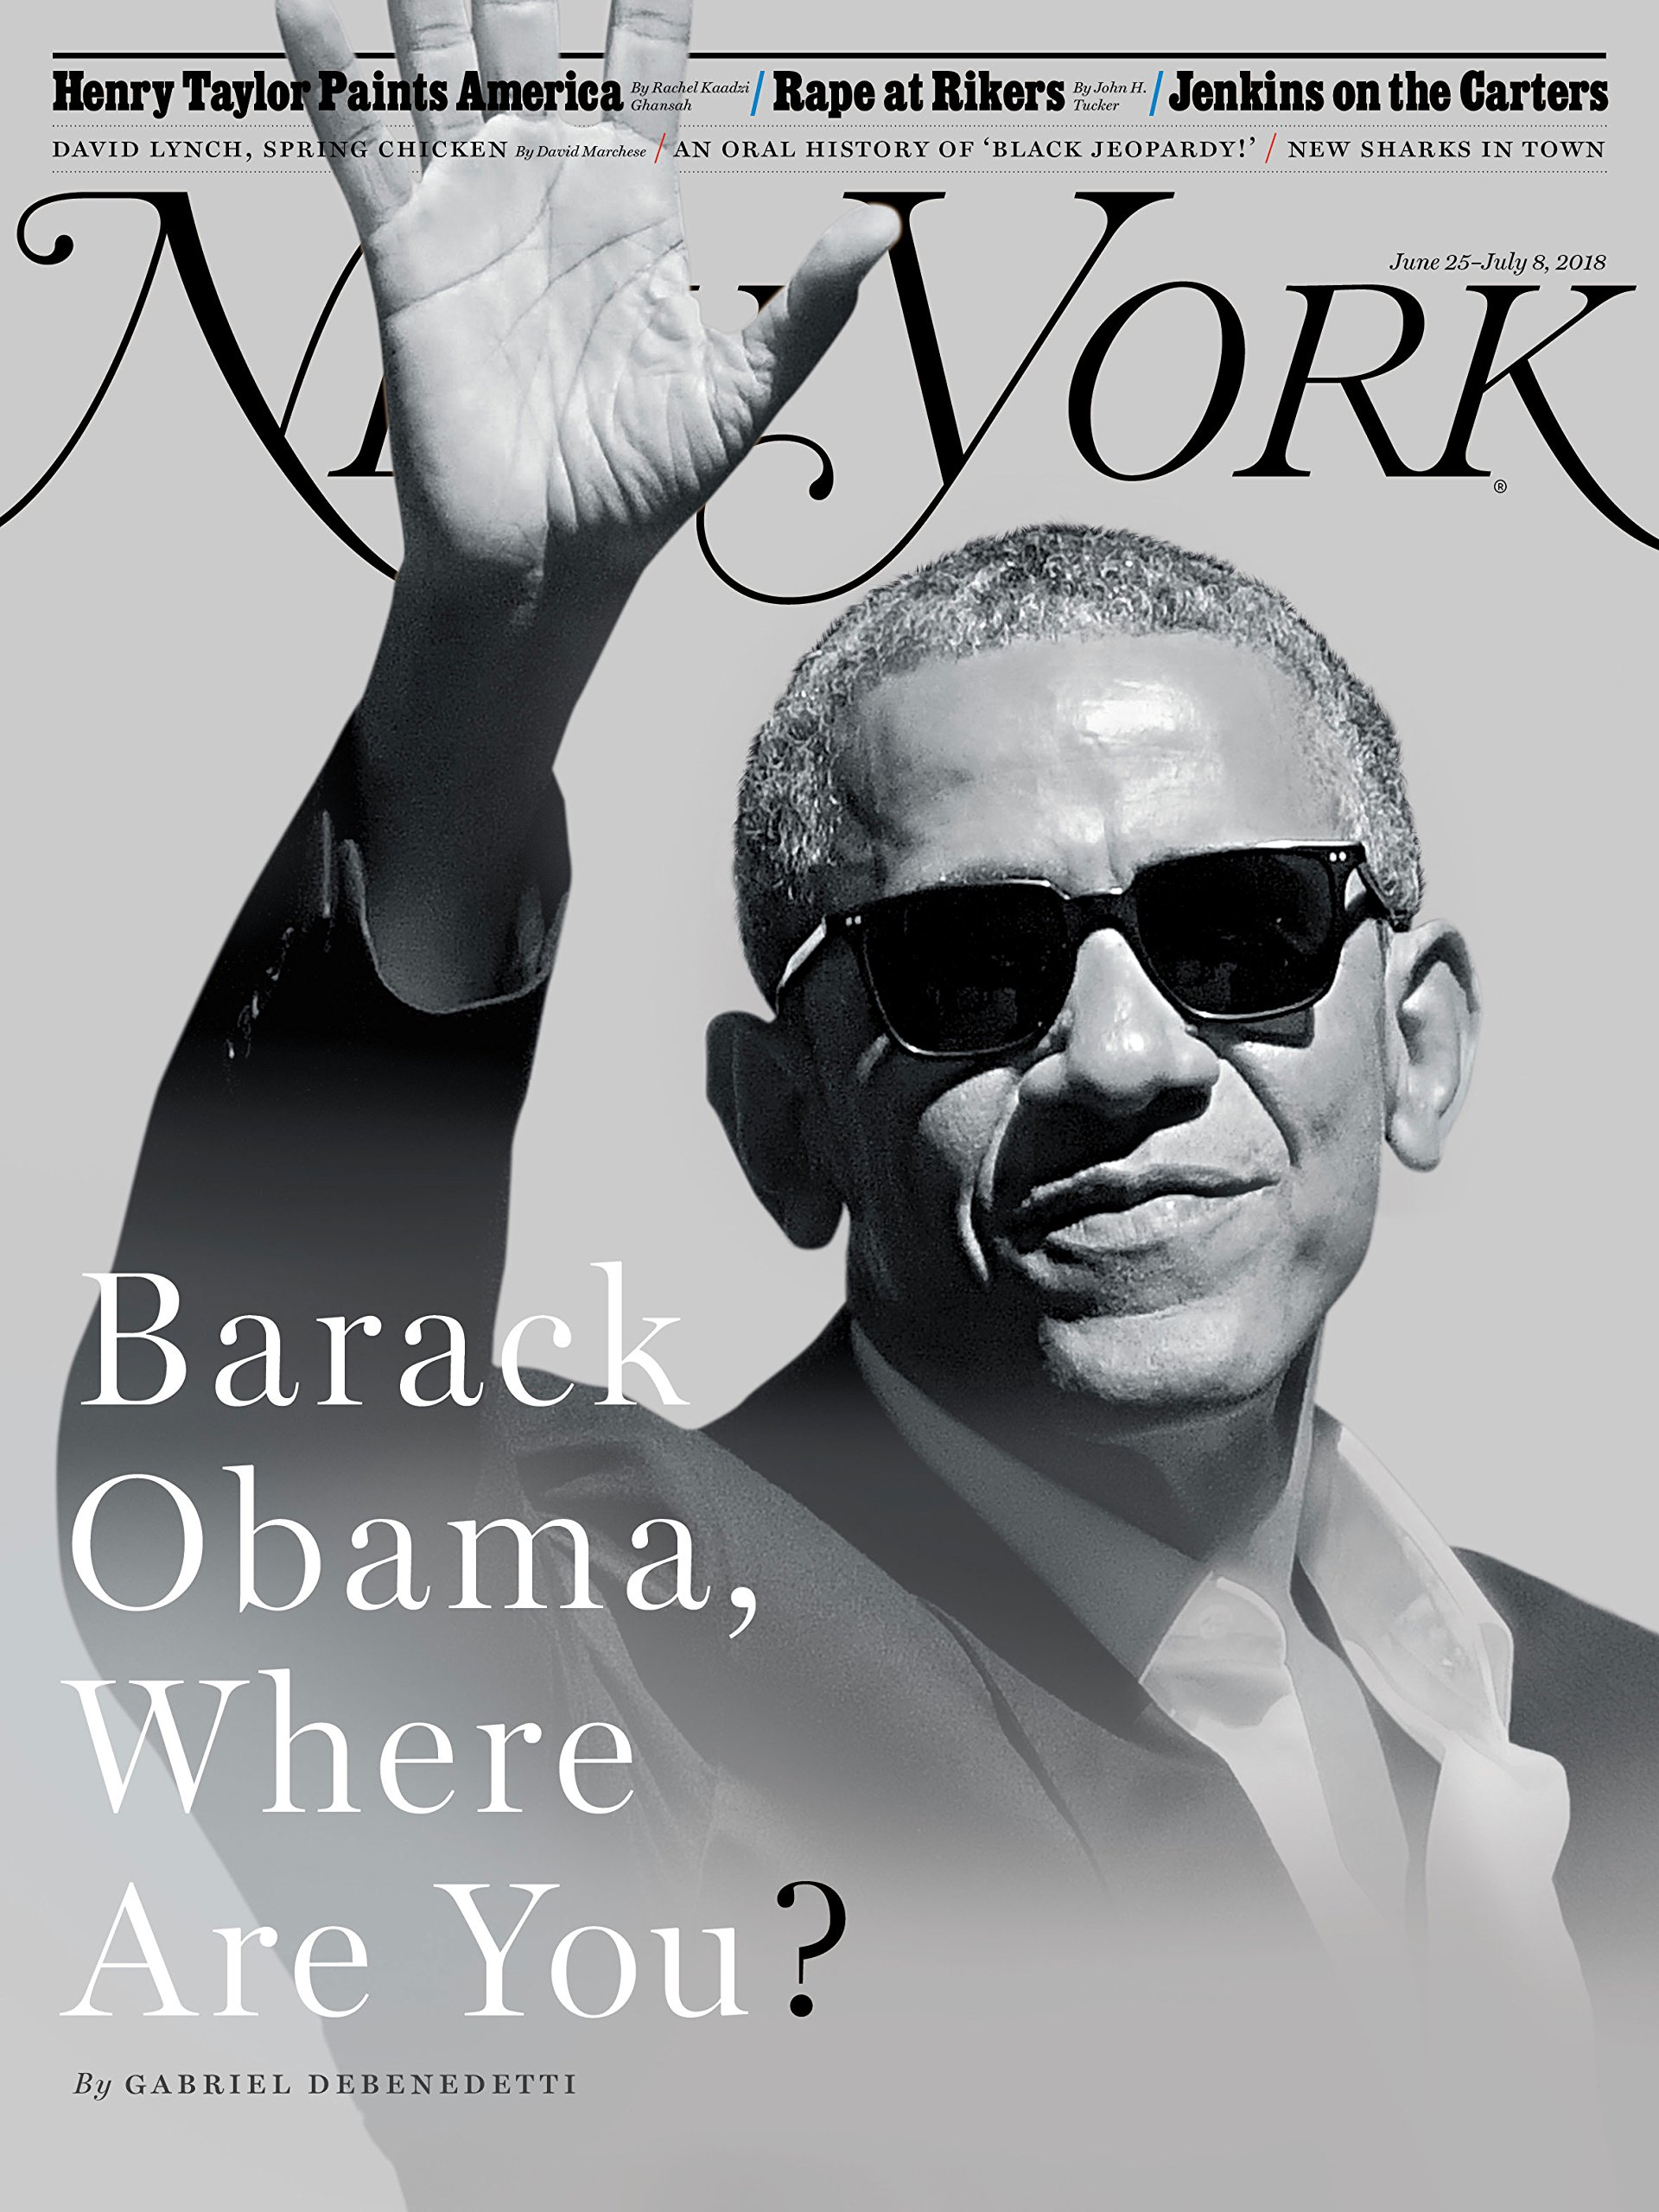 Download New York Magazine (June 25, 2018 -July 8, 2018) Barack Obama, Where Are You? Cover ebook